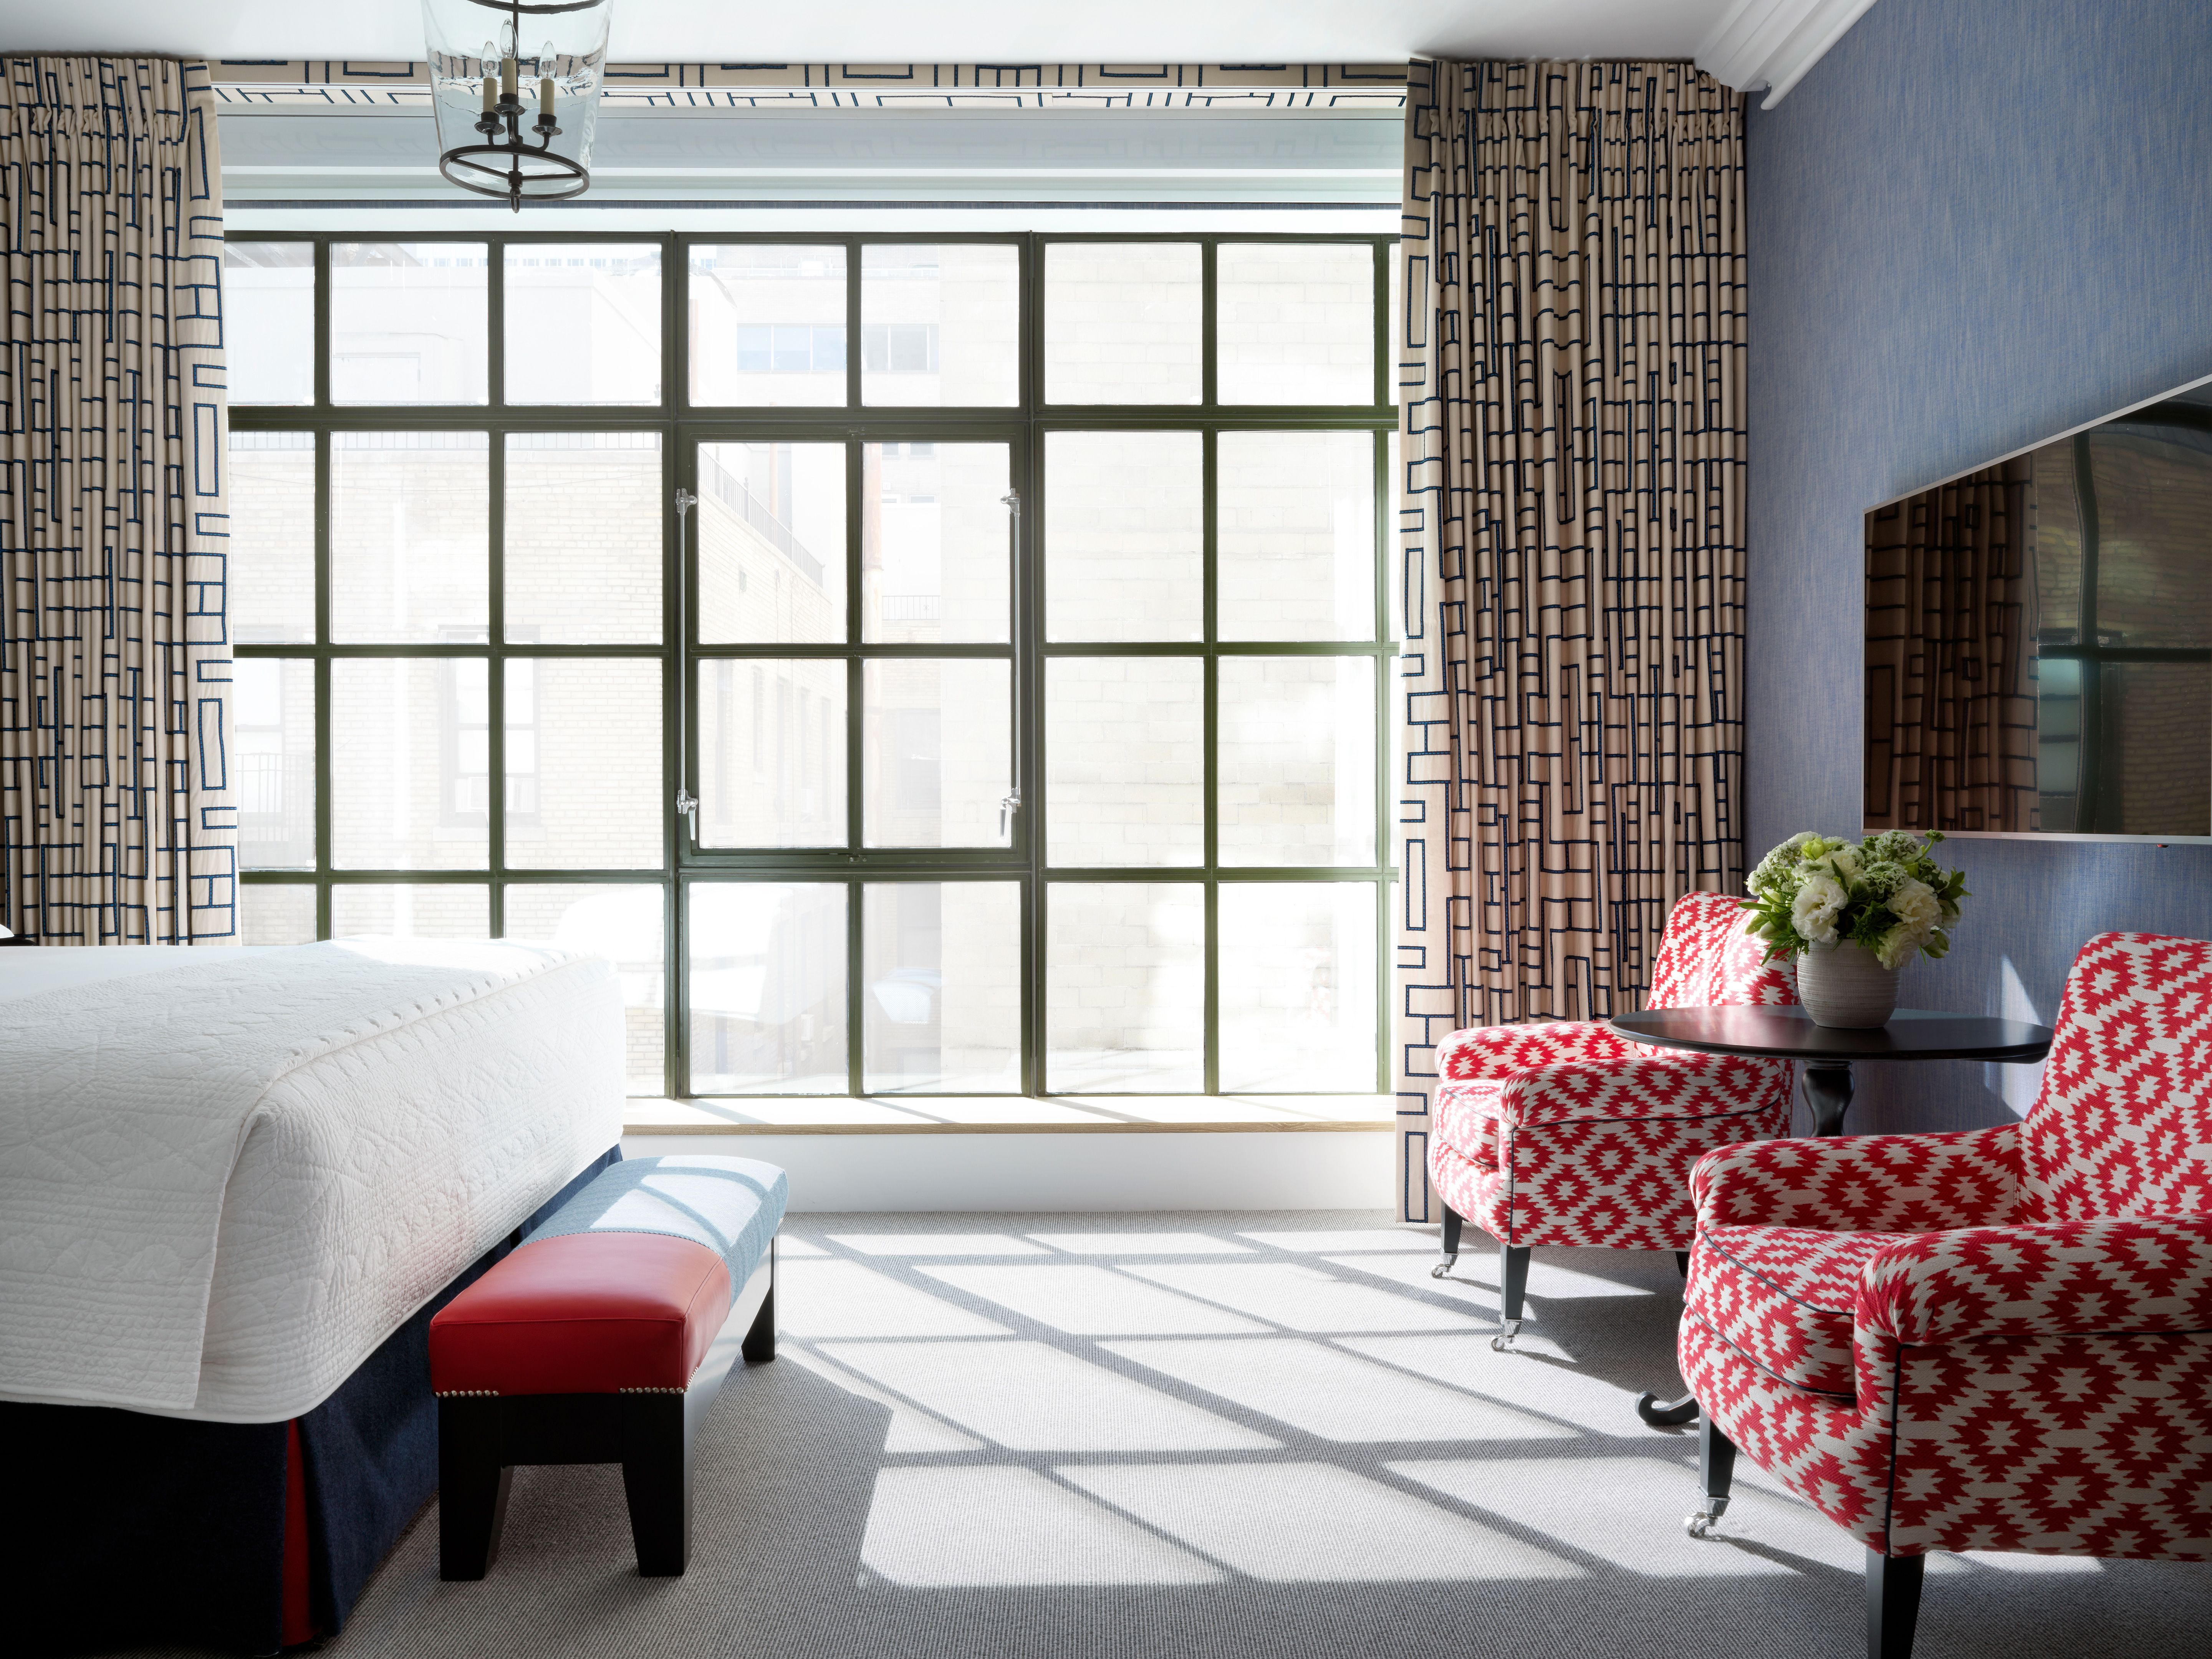 Rooms & Suites at The Whitby Hotel in New York City, USA - Design ...